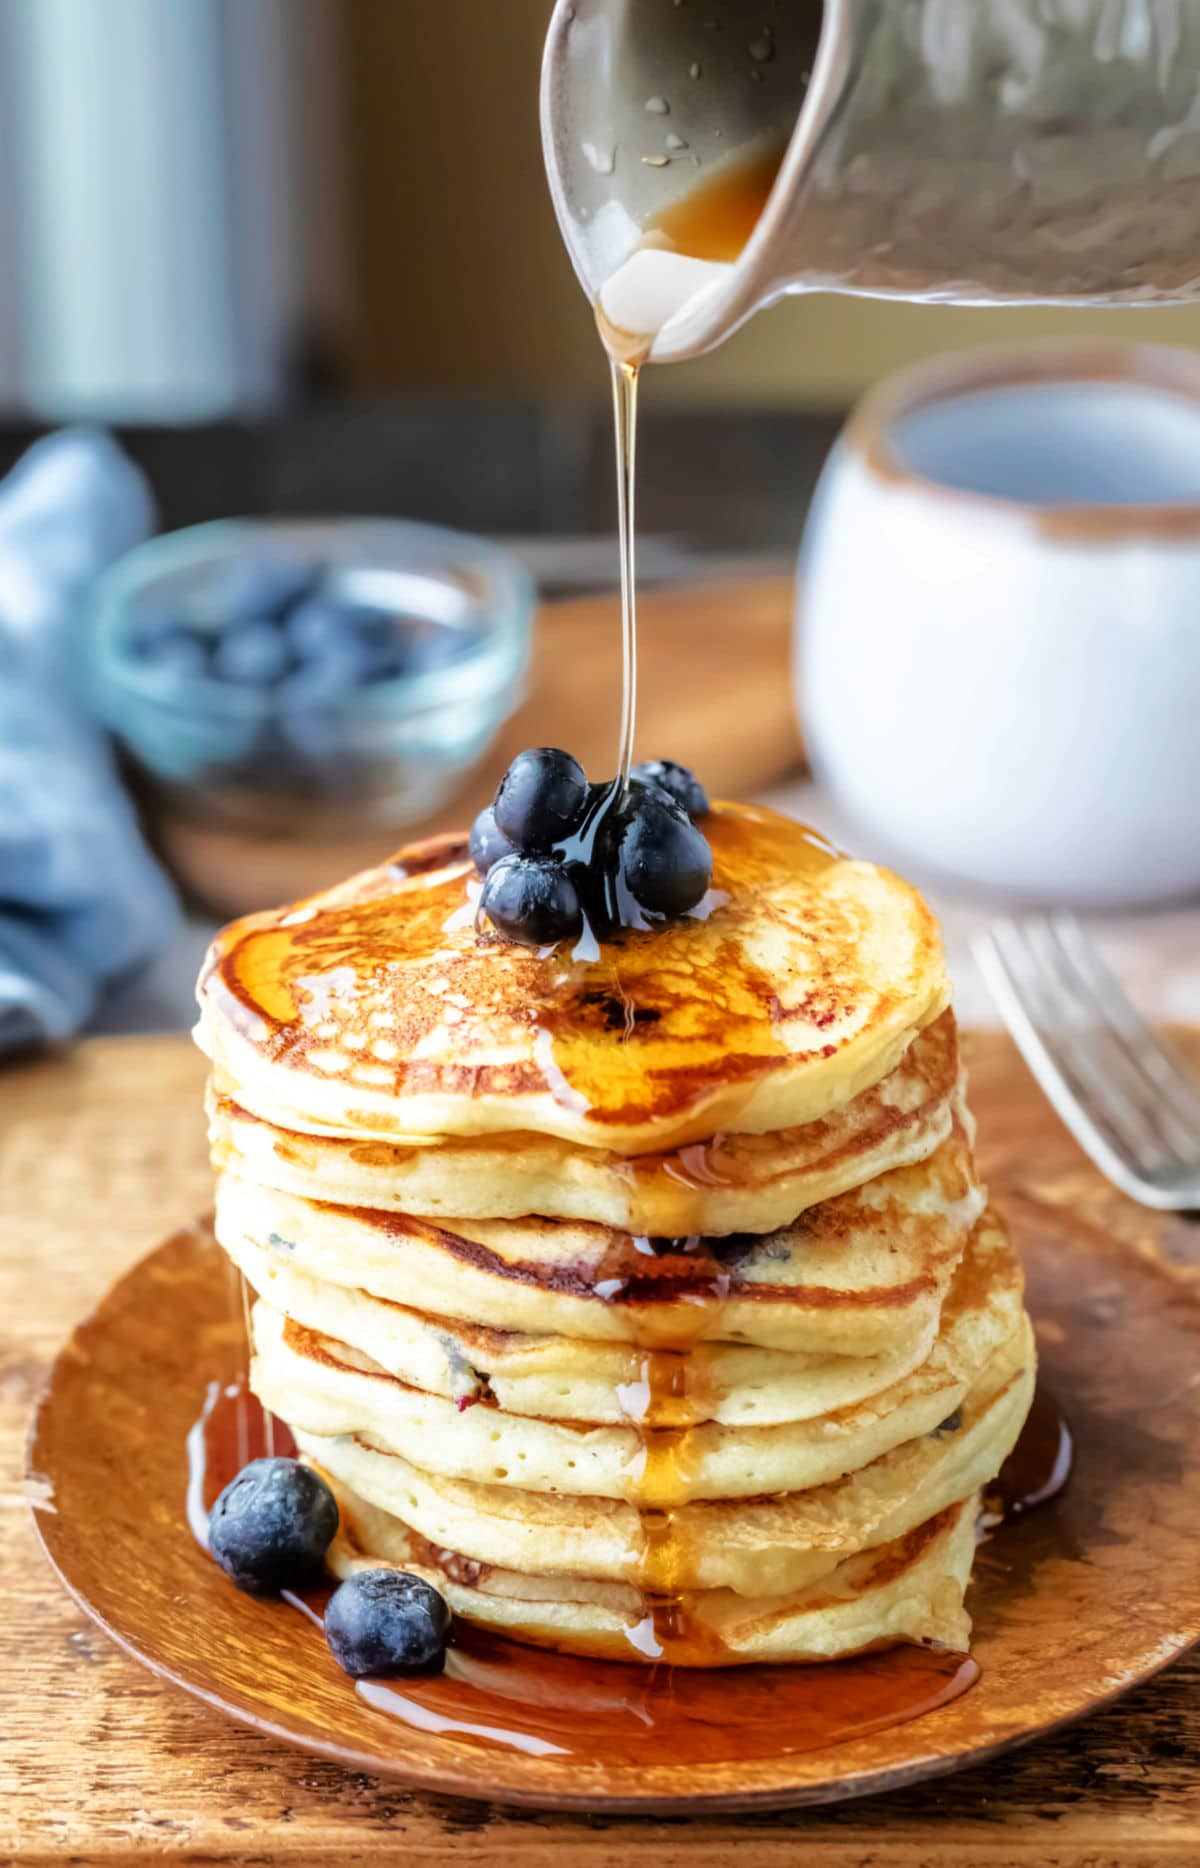 Pottery jug pouring maple syrup onto stack of pancakes